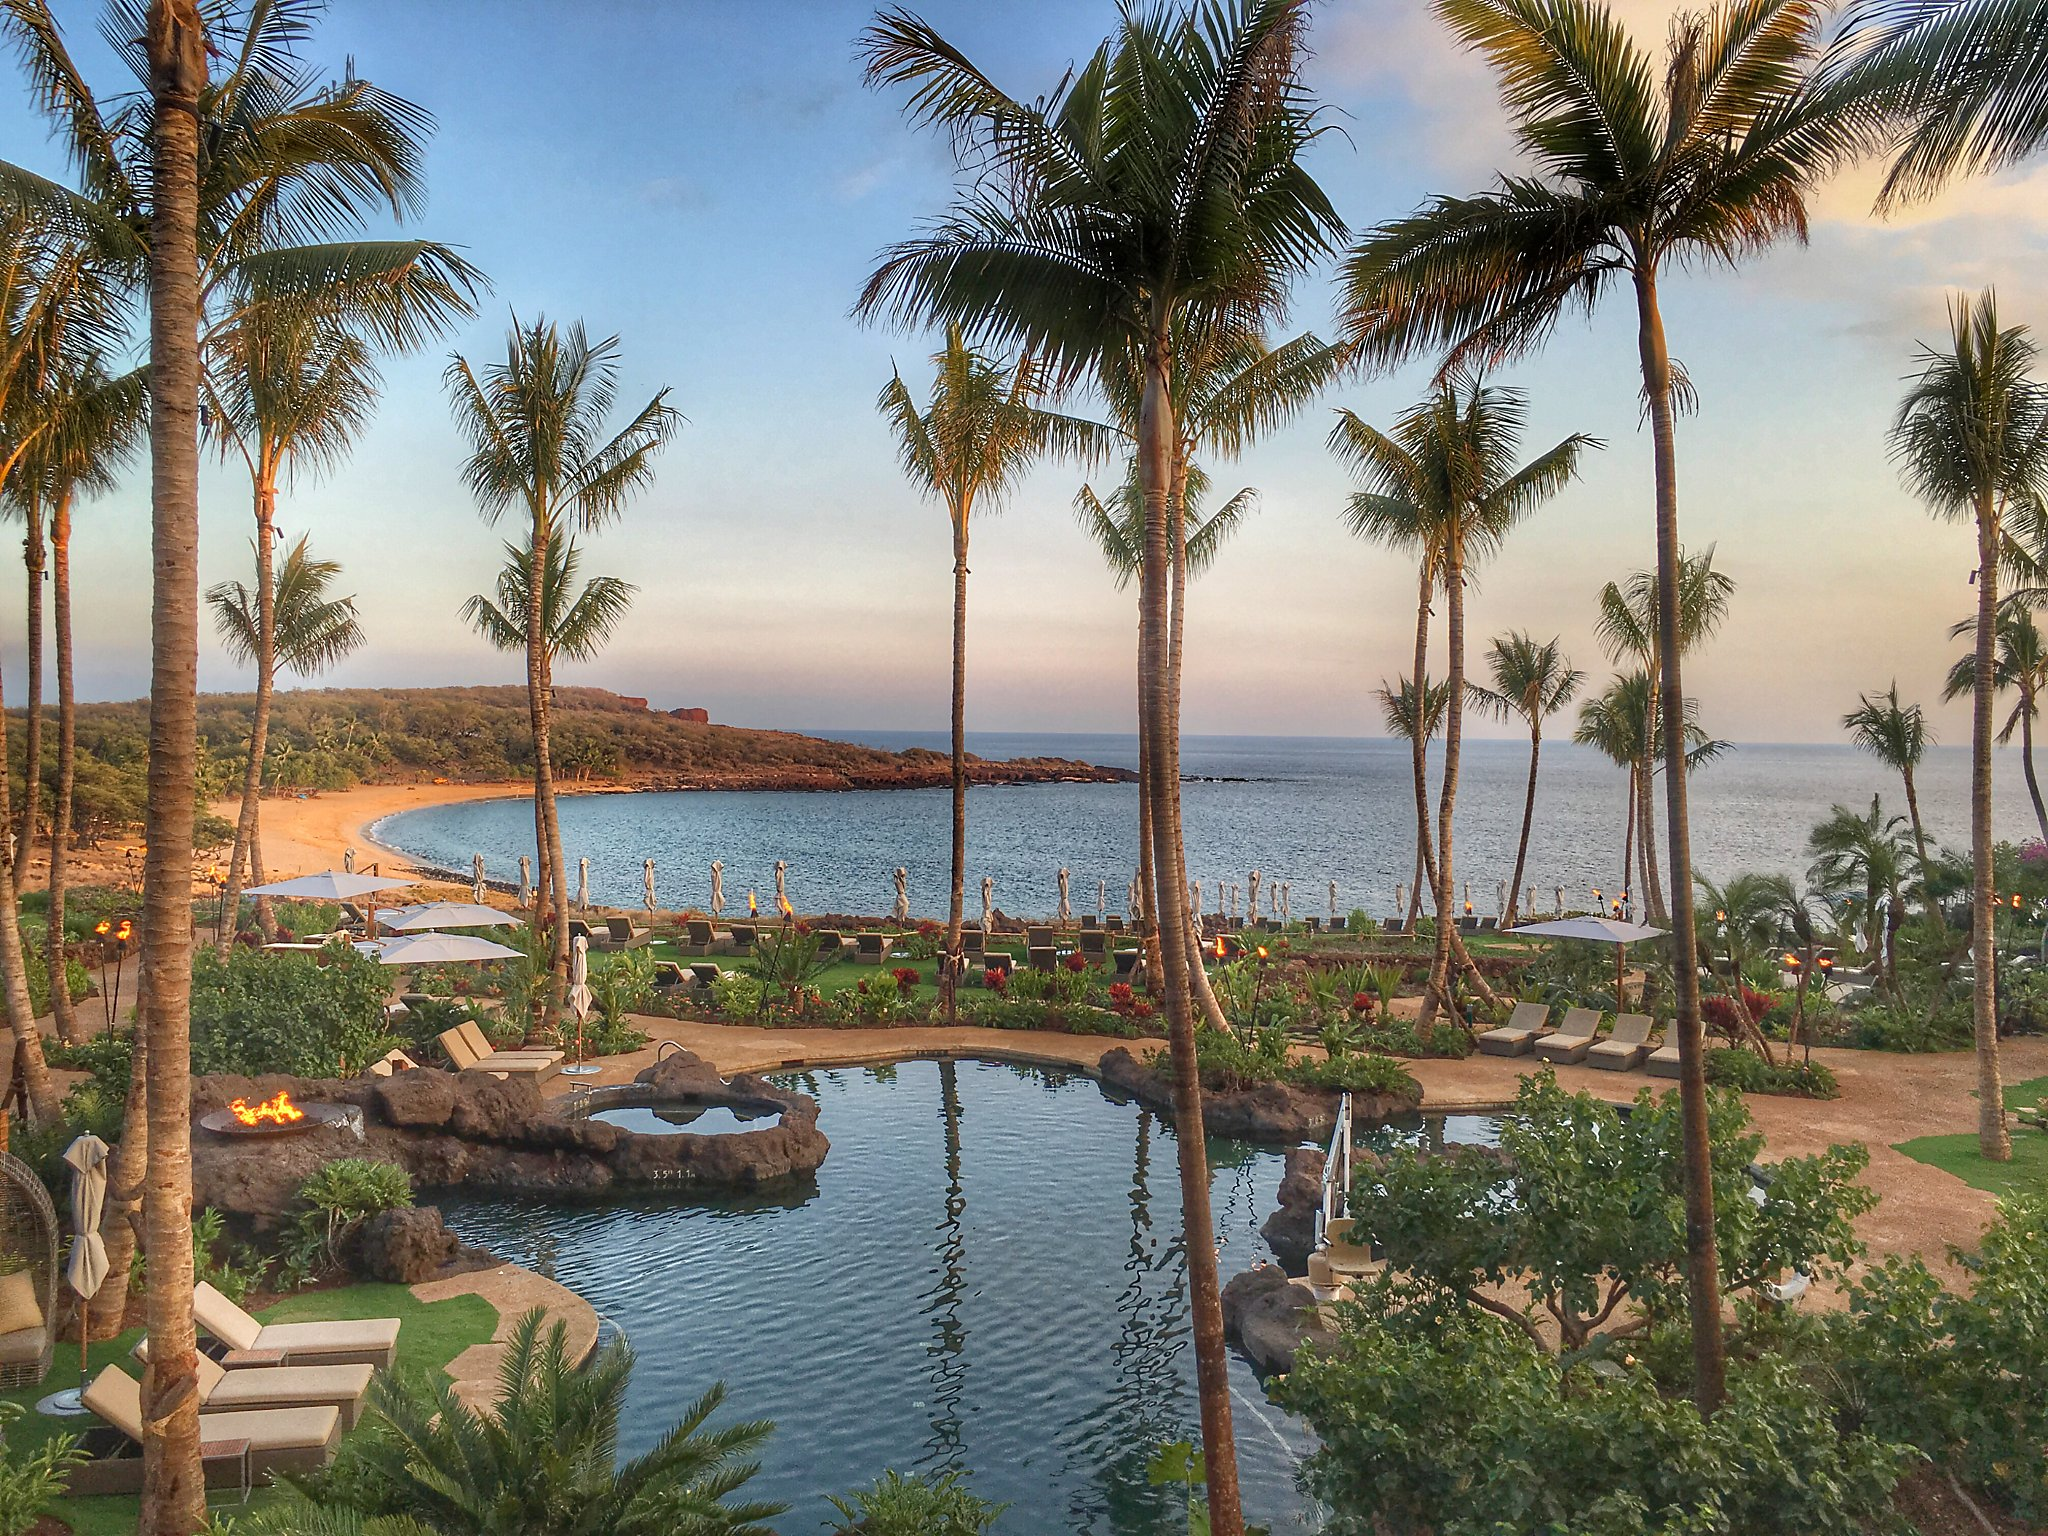 Lanai's Four Seasons Resort Gets Mega-makeover From Larry